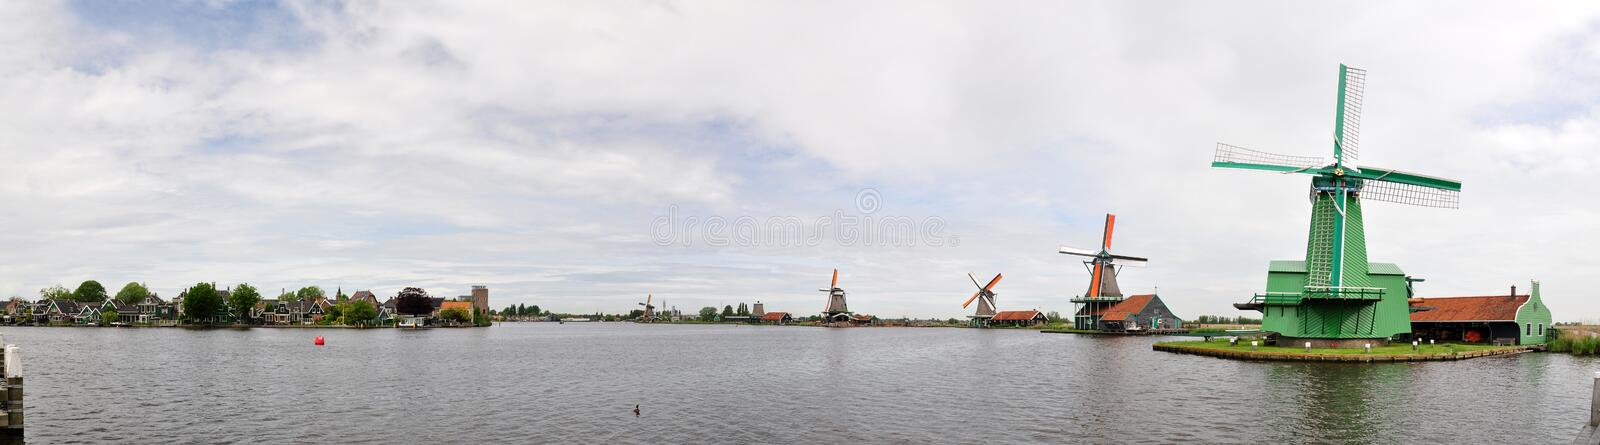 Dutch windmills and traditional houses on the Zaans river in Zaanse Schans, Netherlands stock photography